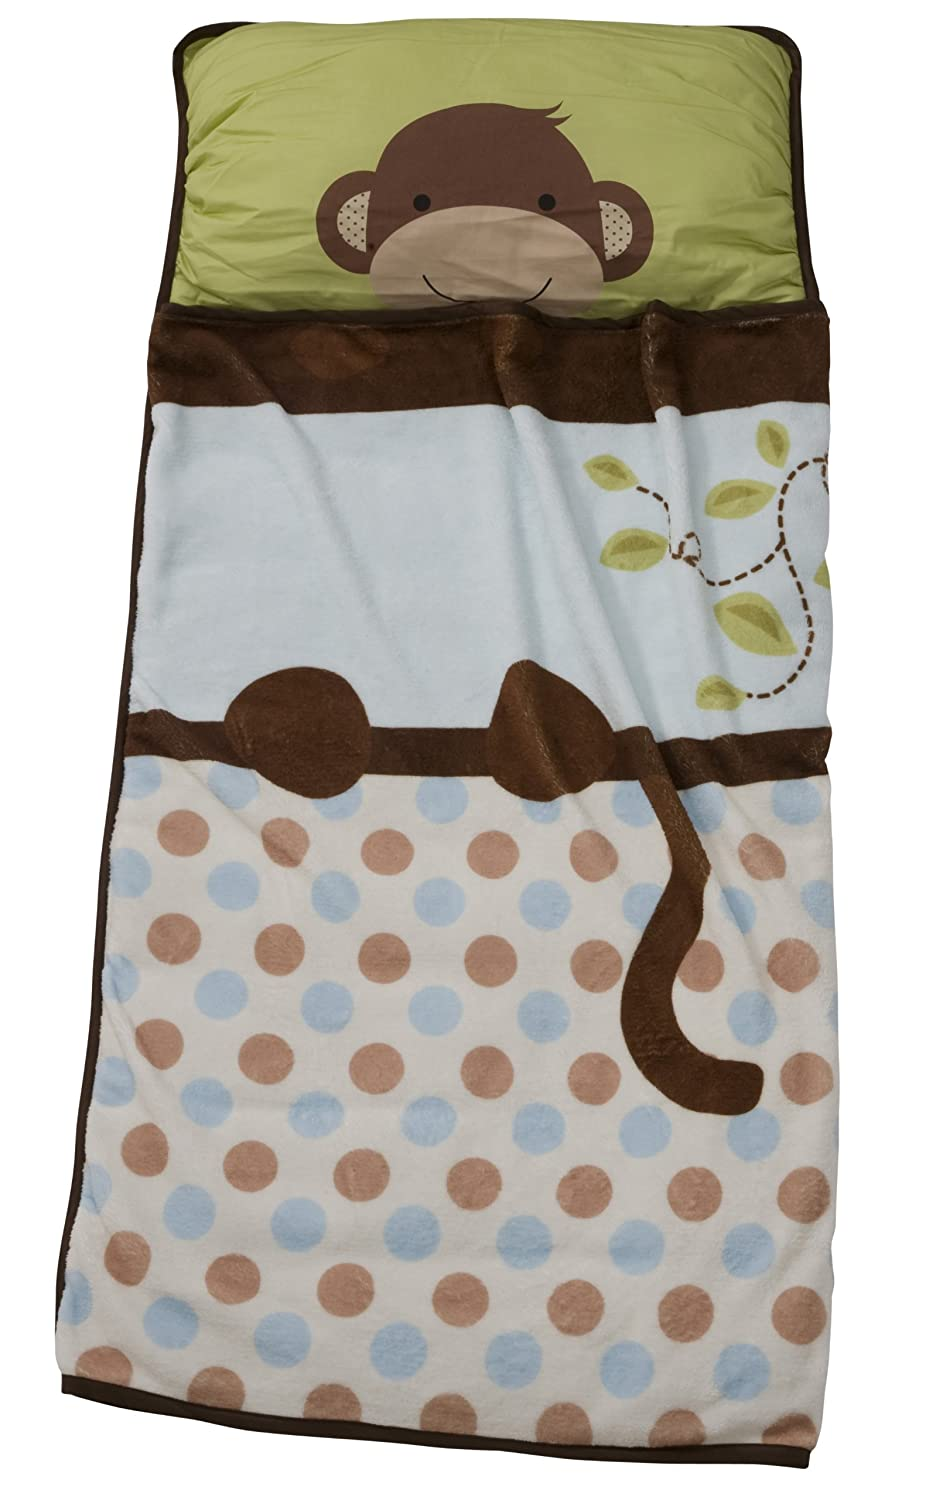 Brown Moneky Lambs & Ivy Nap Mat